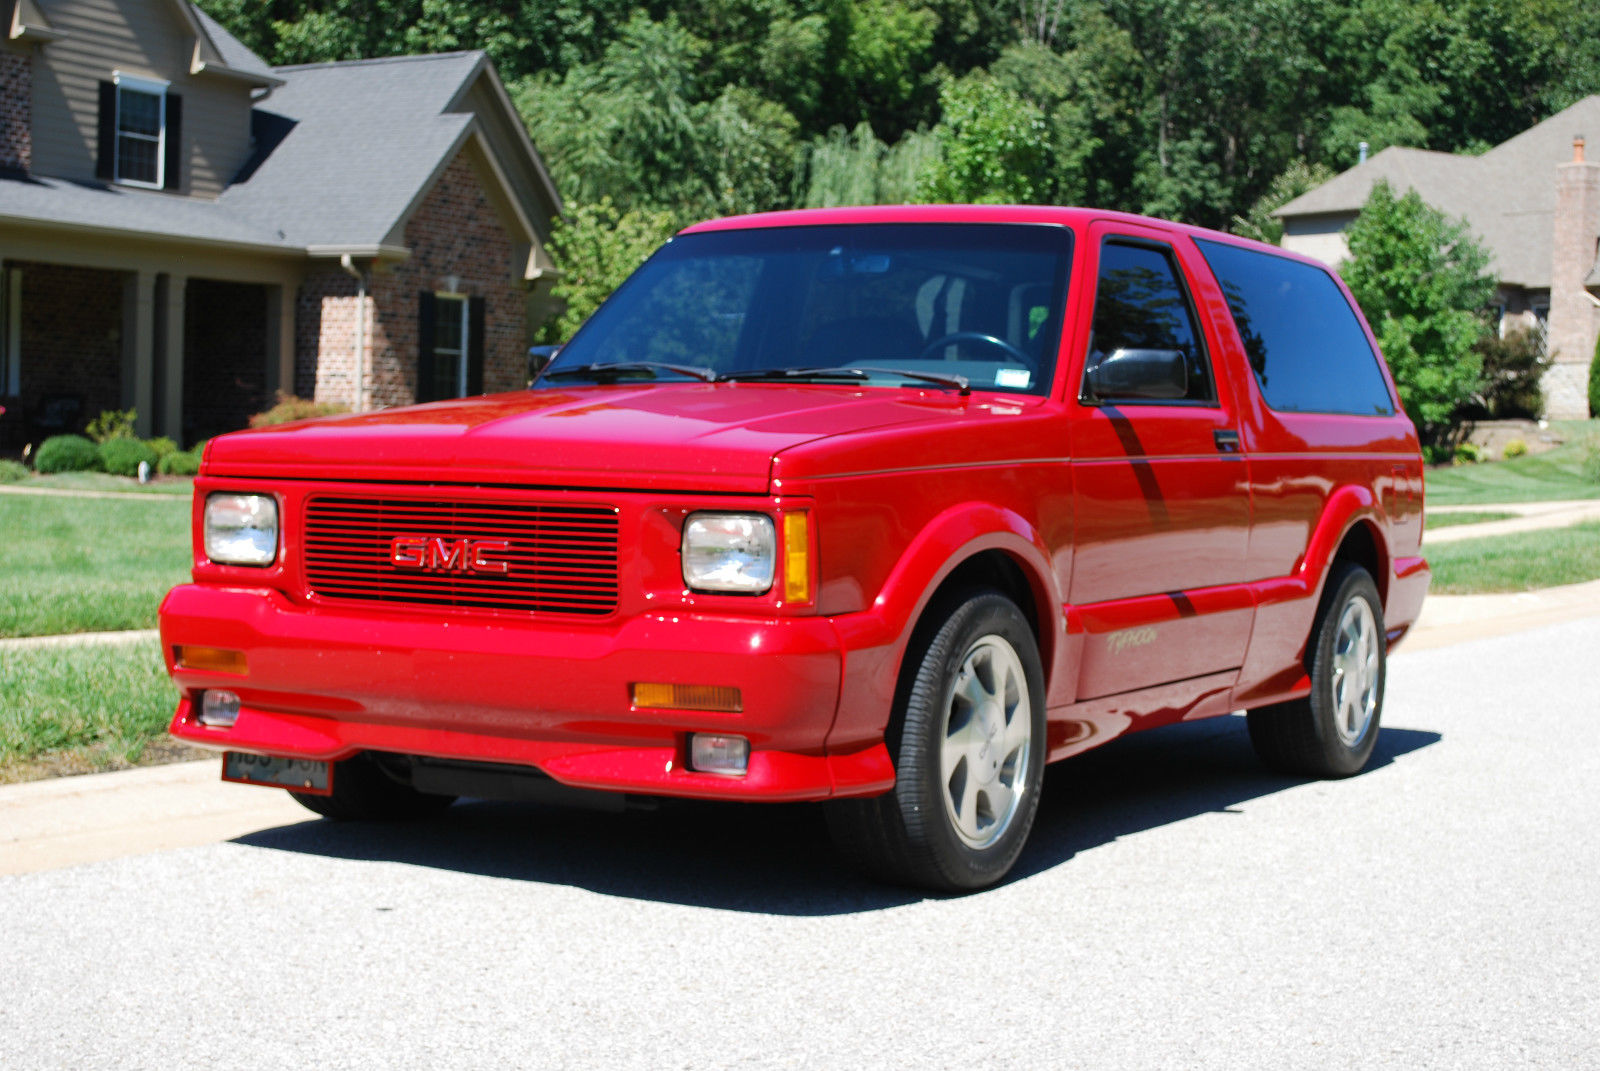 1993 gmc typhoon immaculate 100 original 2 owner low mile rare red syclone. Black Bedroom Furniture Sets. Home Design Ideas